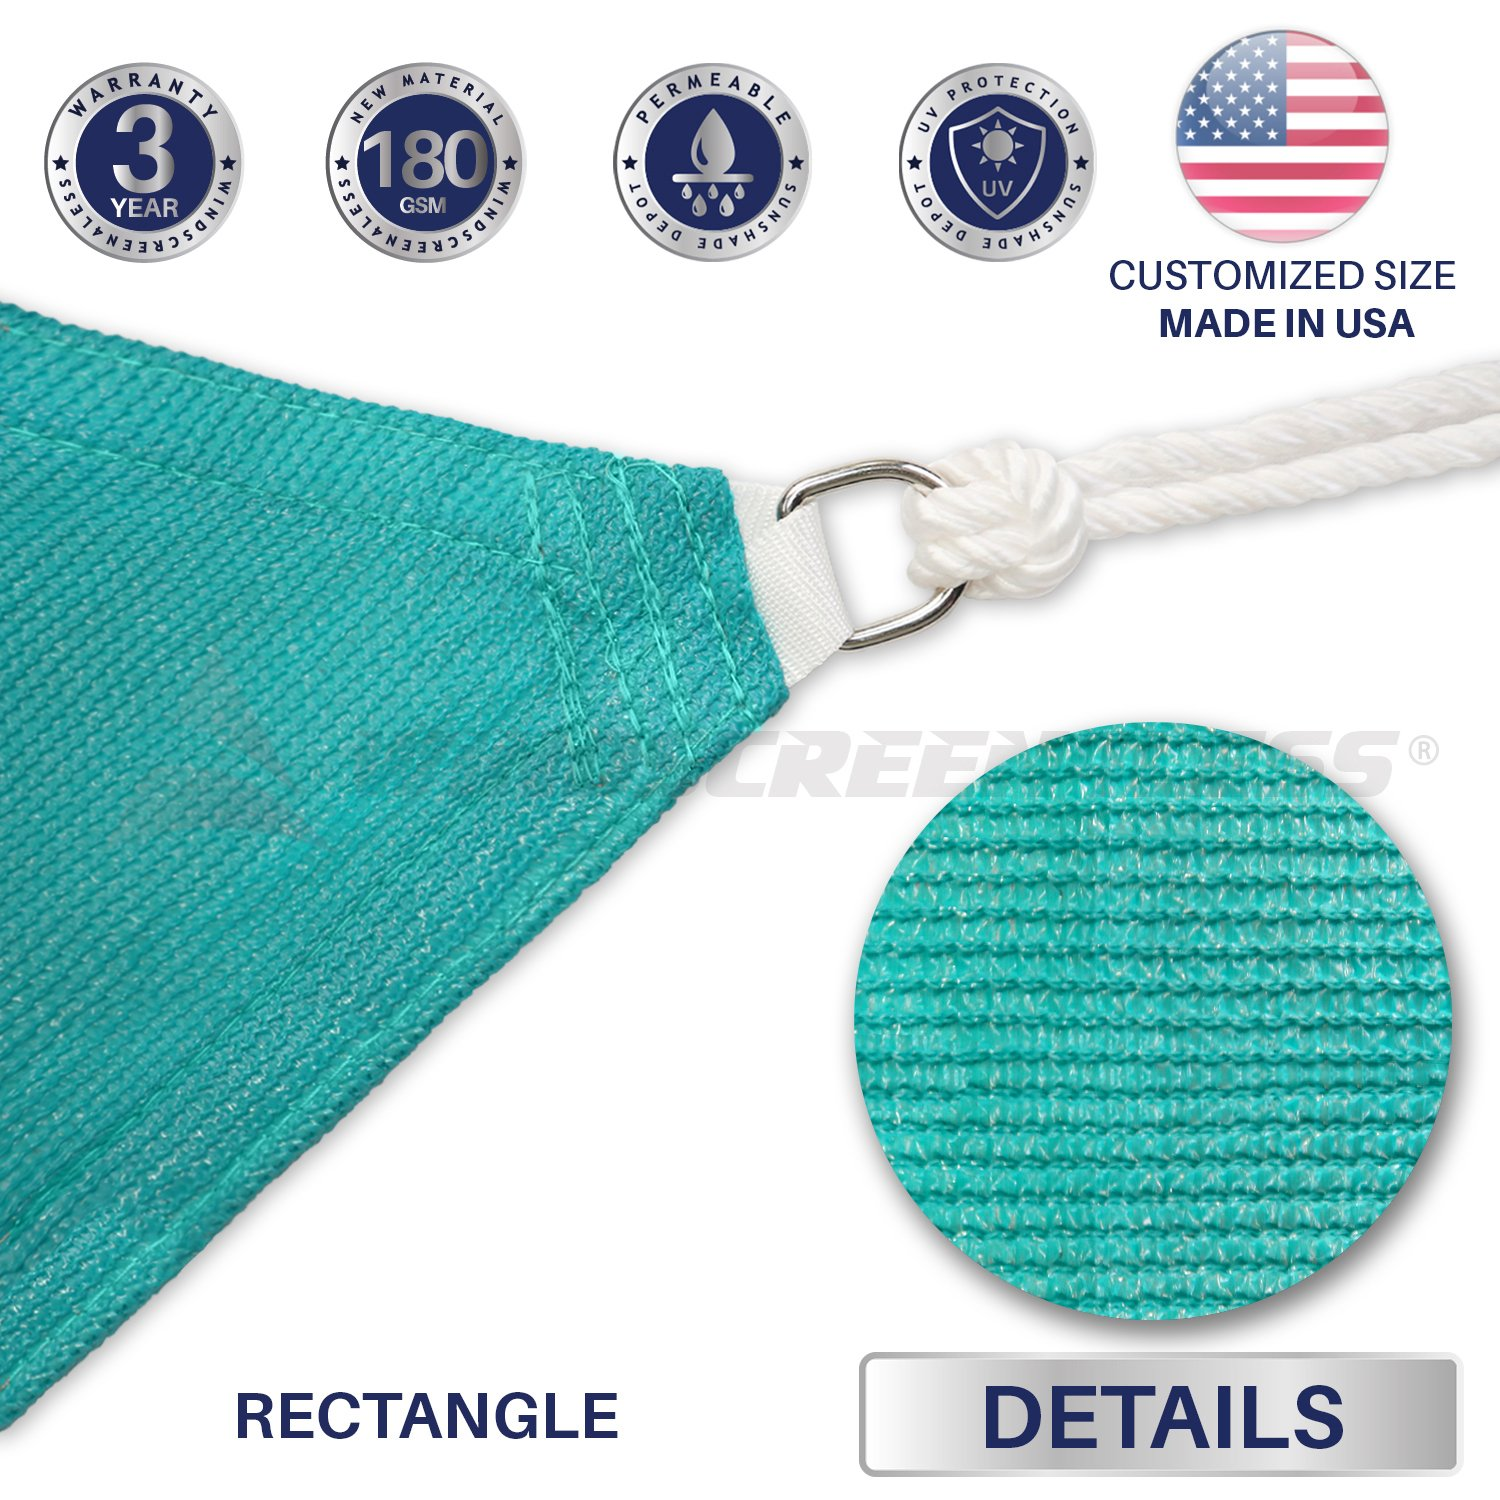 Windscreen4less 8 x 12 Sun Shade Sail UV Block Fabric Canopy in Turquoise Rectangle for Patio Garden Customized 3 Year Limited Warranty